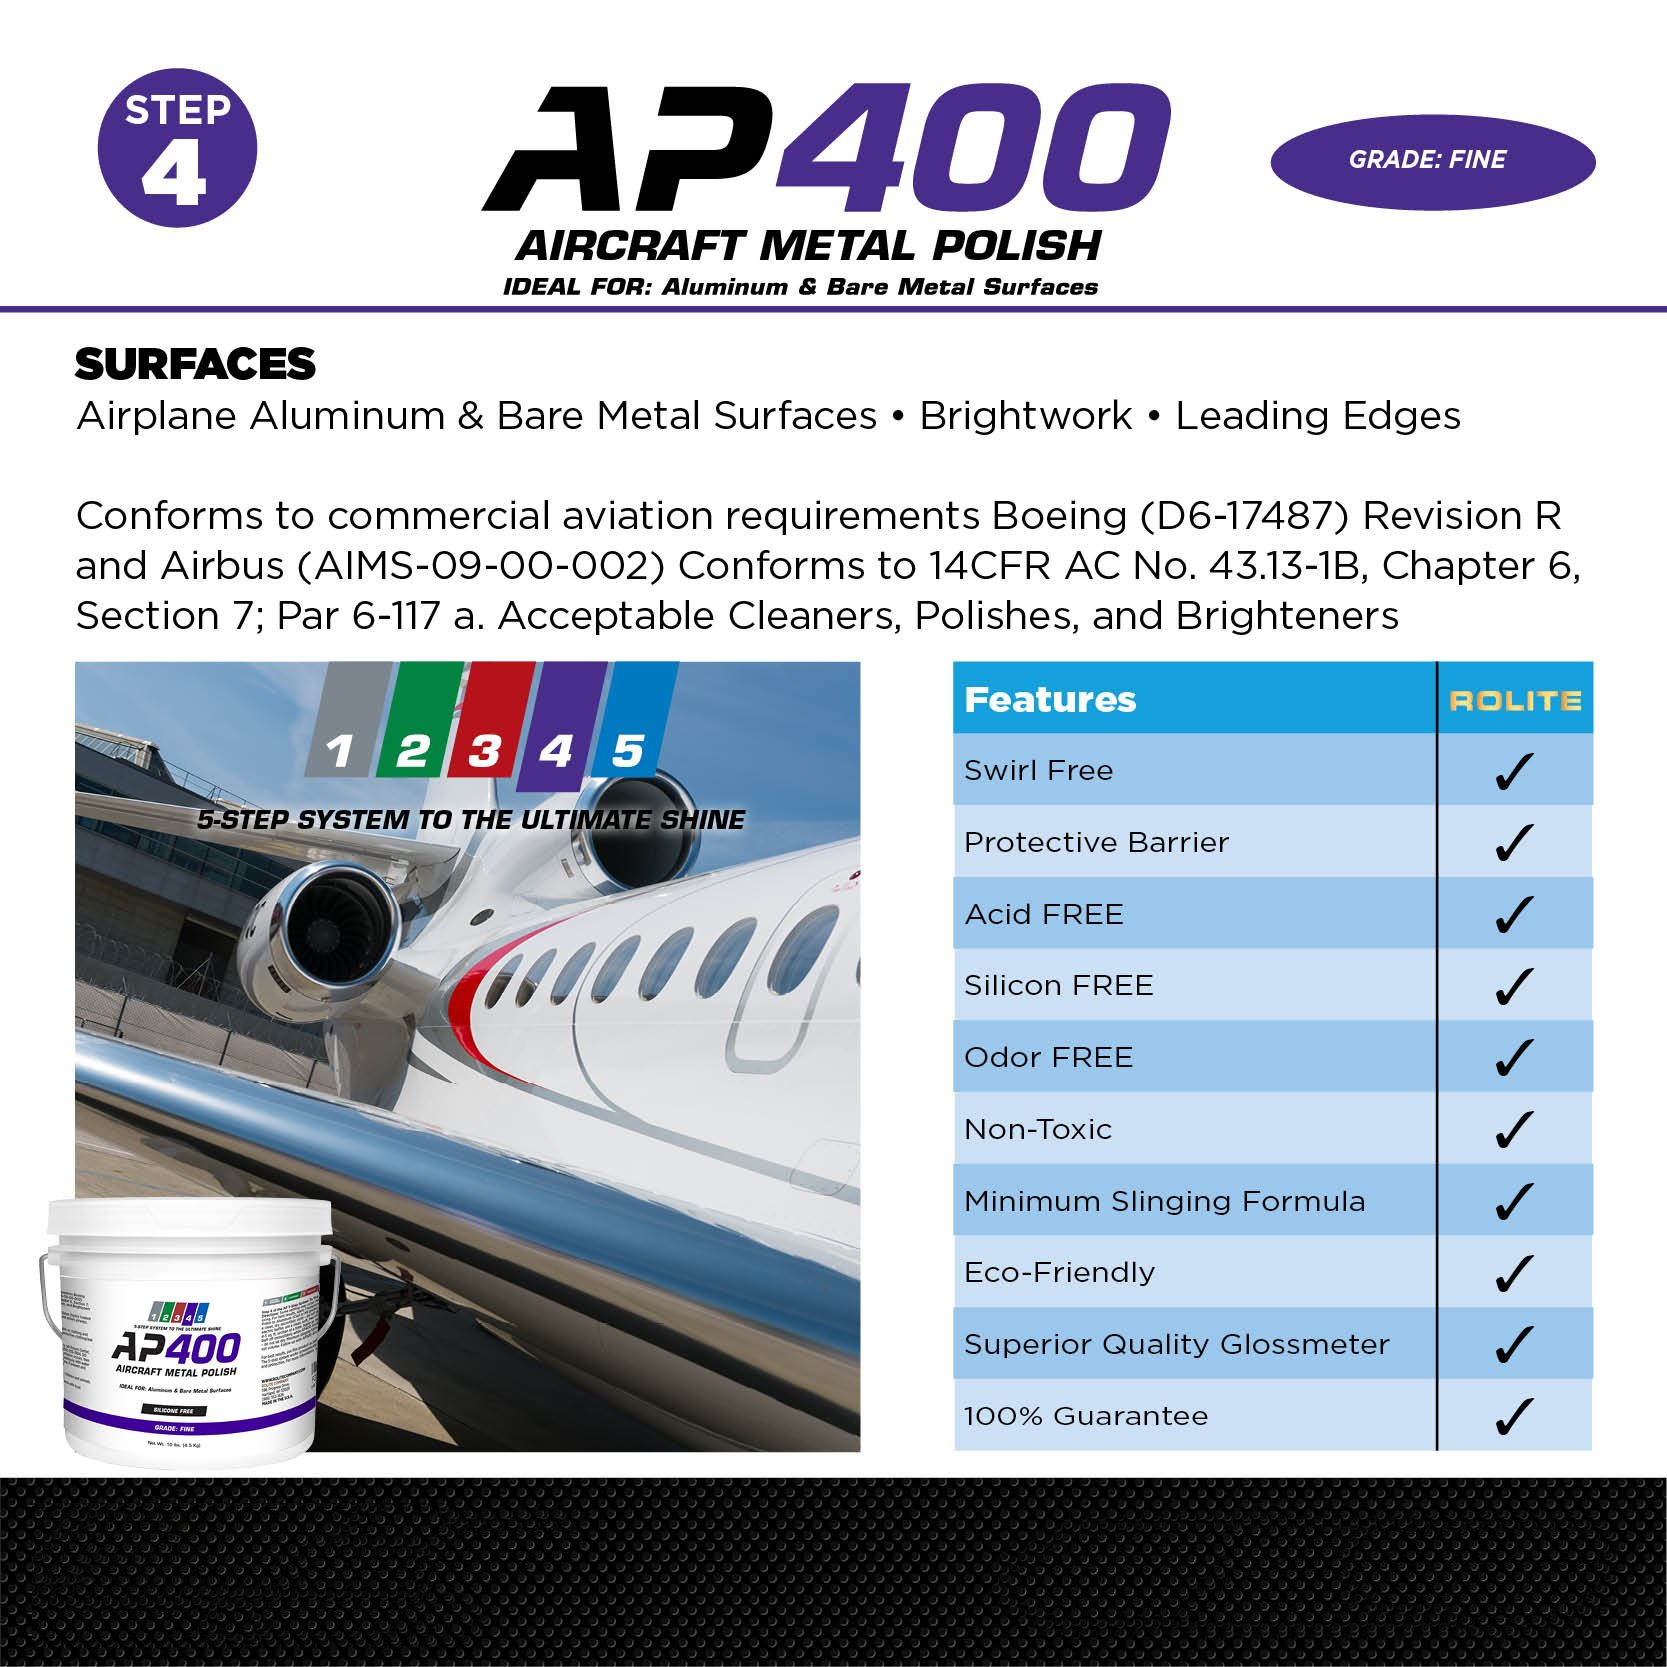 AP400 Aircraft Metal Polish (10lb) - Fine - for Airplane Aluminum & Bare Metal Surfaces, Brightwork, Meets Boeing & Airbus Requirements by Rolite (Image #4)